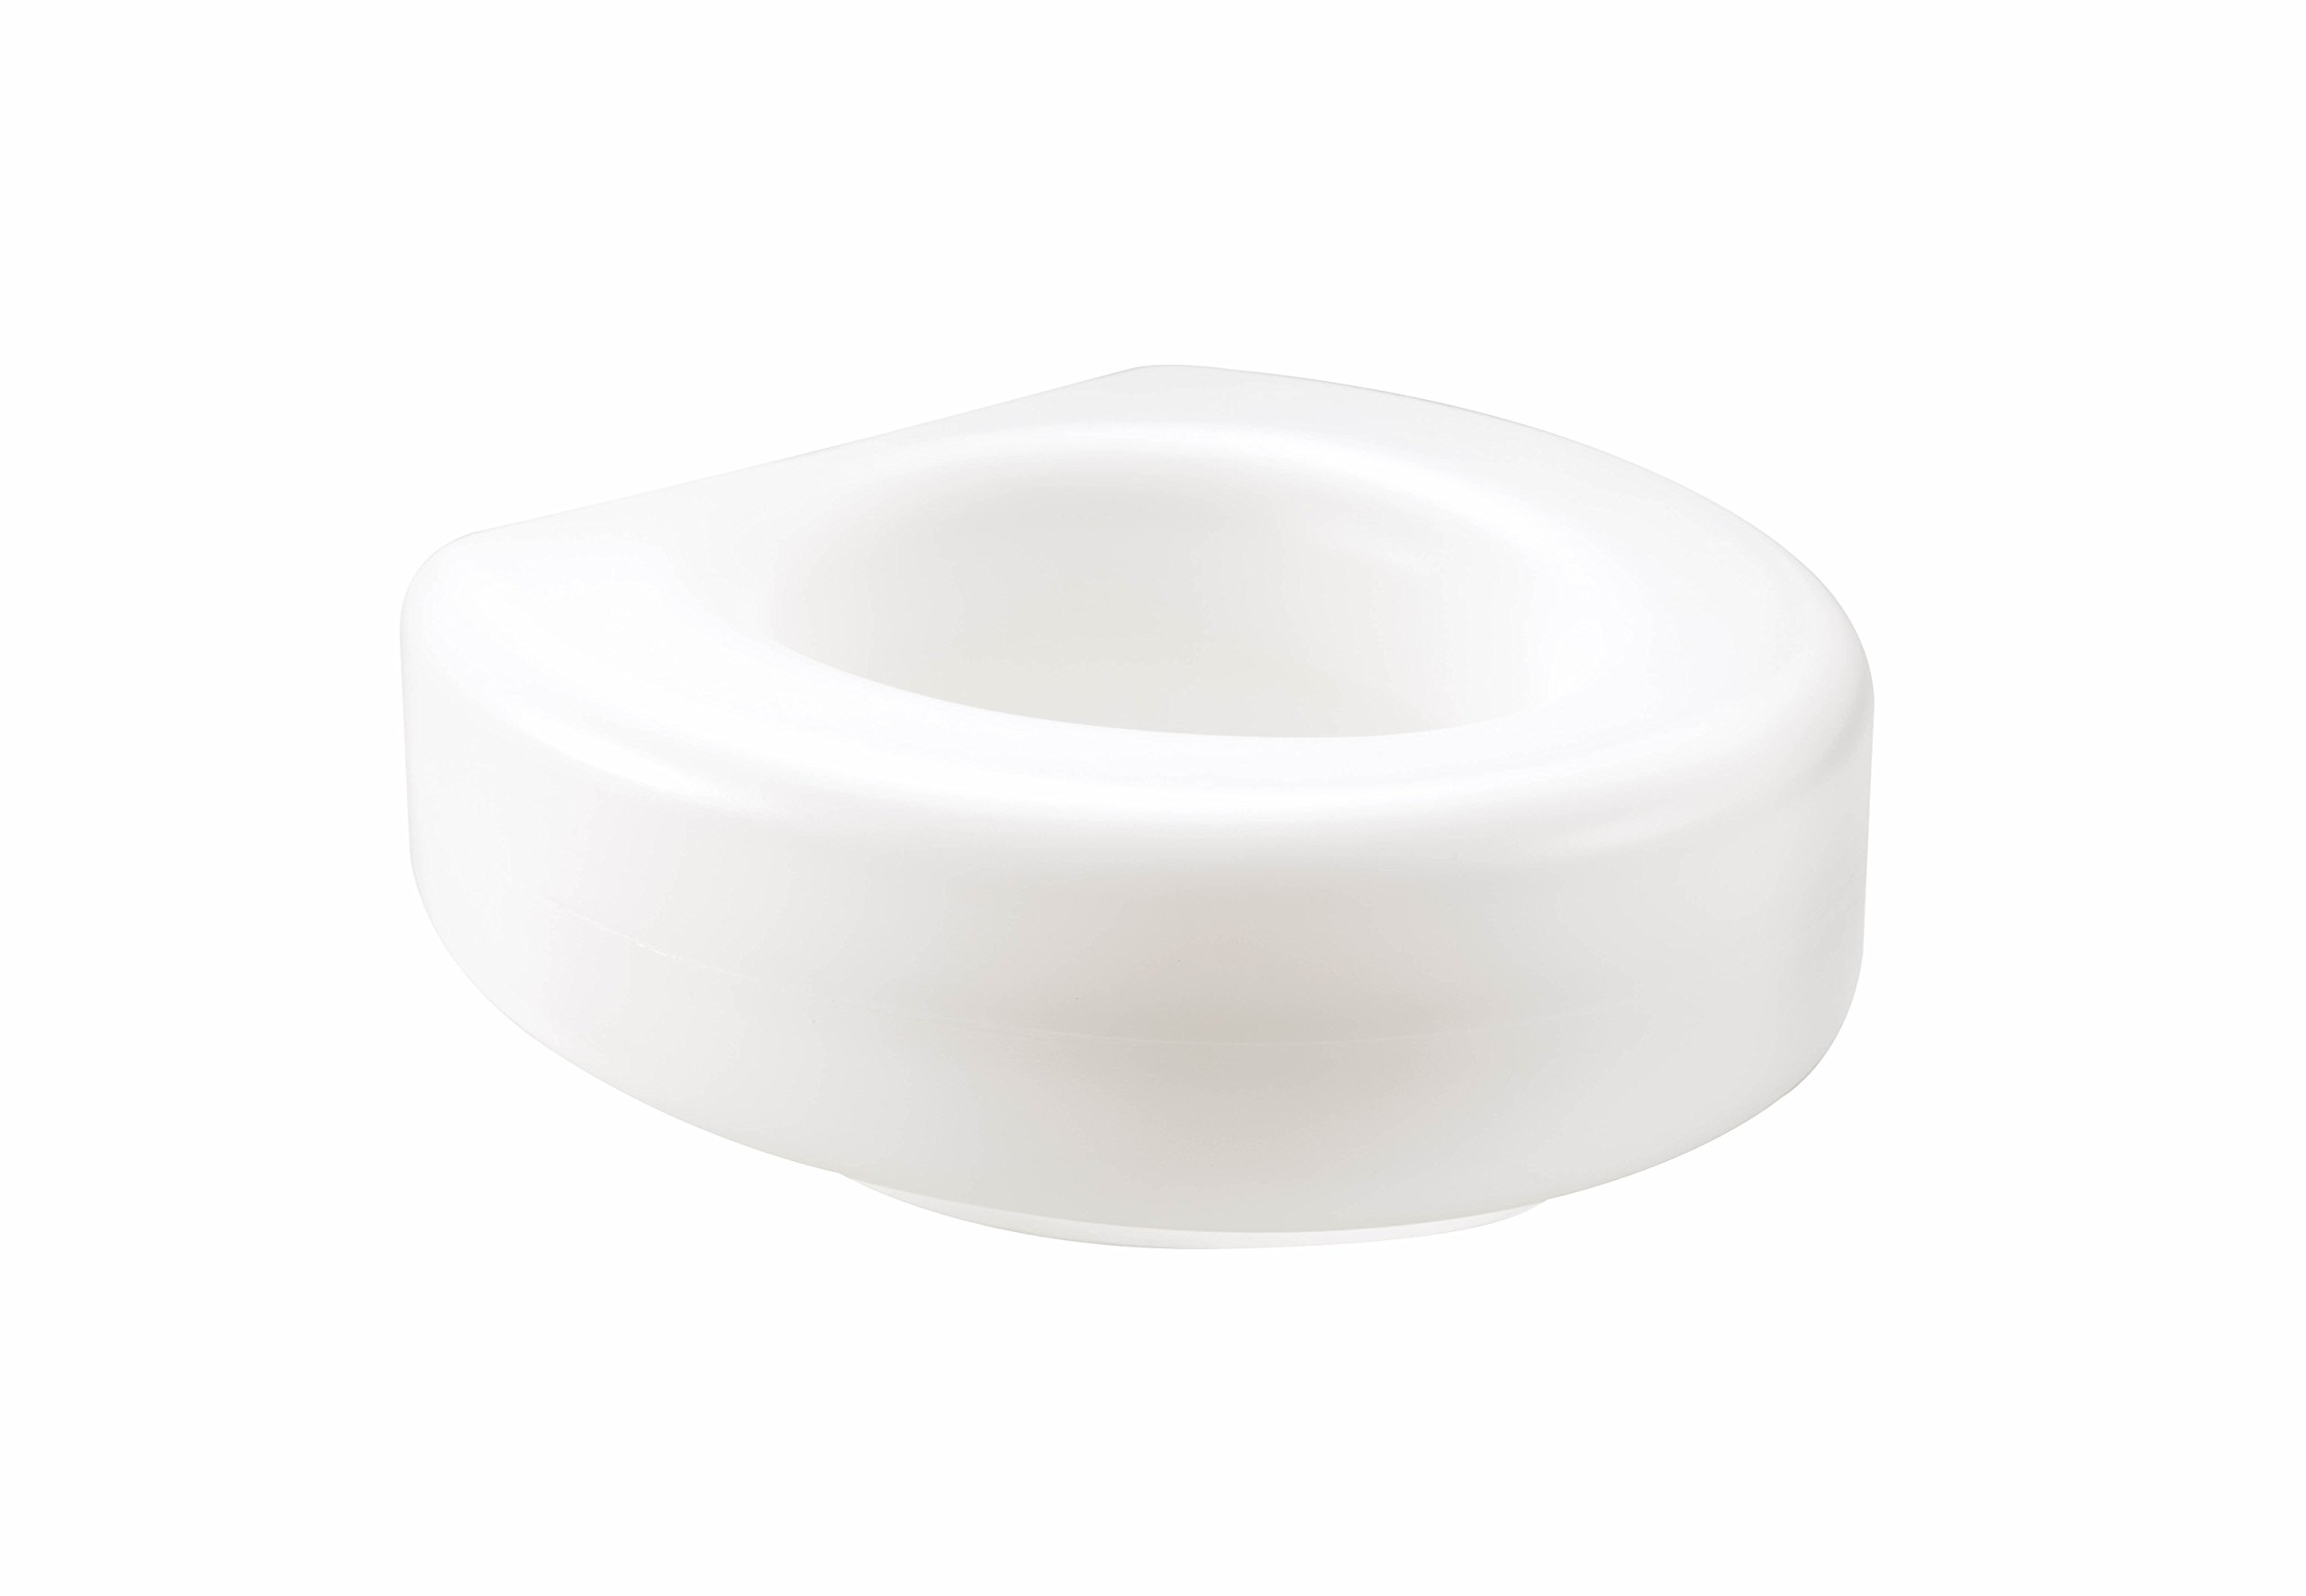 Medline Elevated Heavy Duty Raised Toilet Seat, 300lb Weight Capacity by Medline